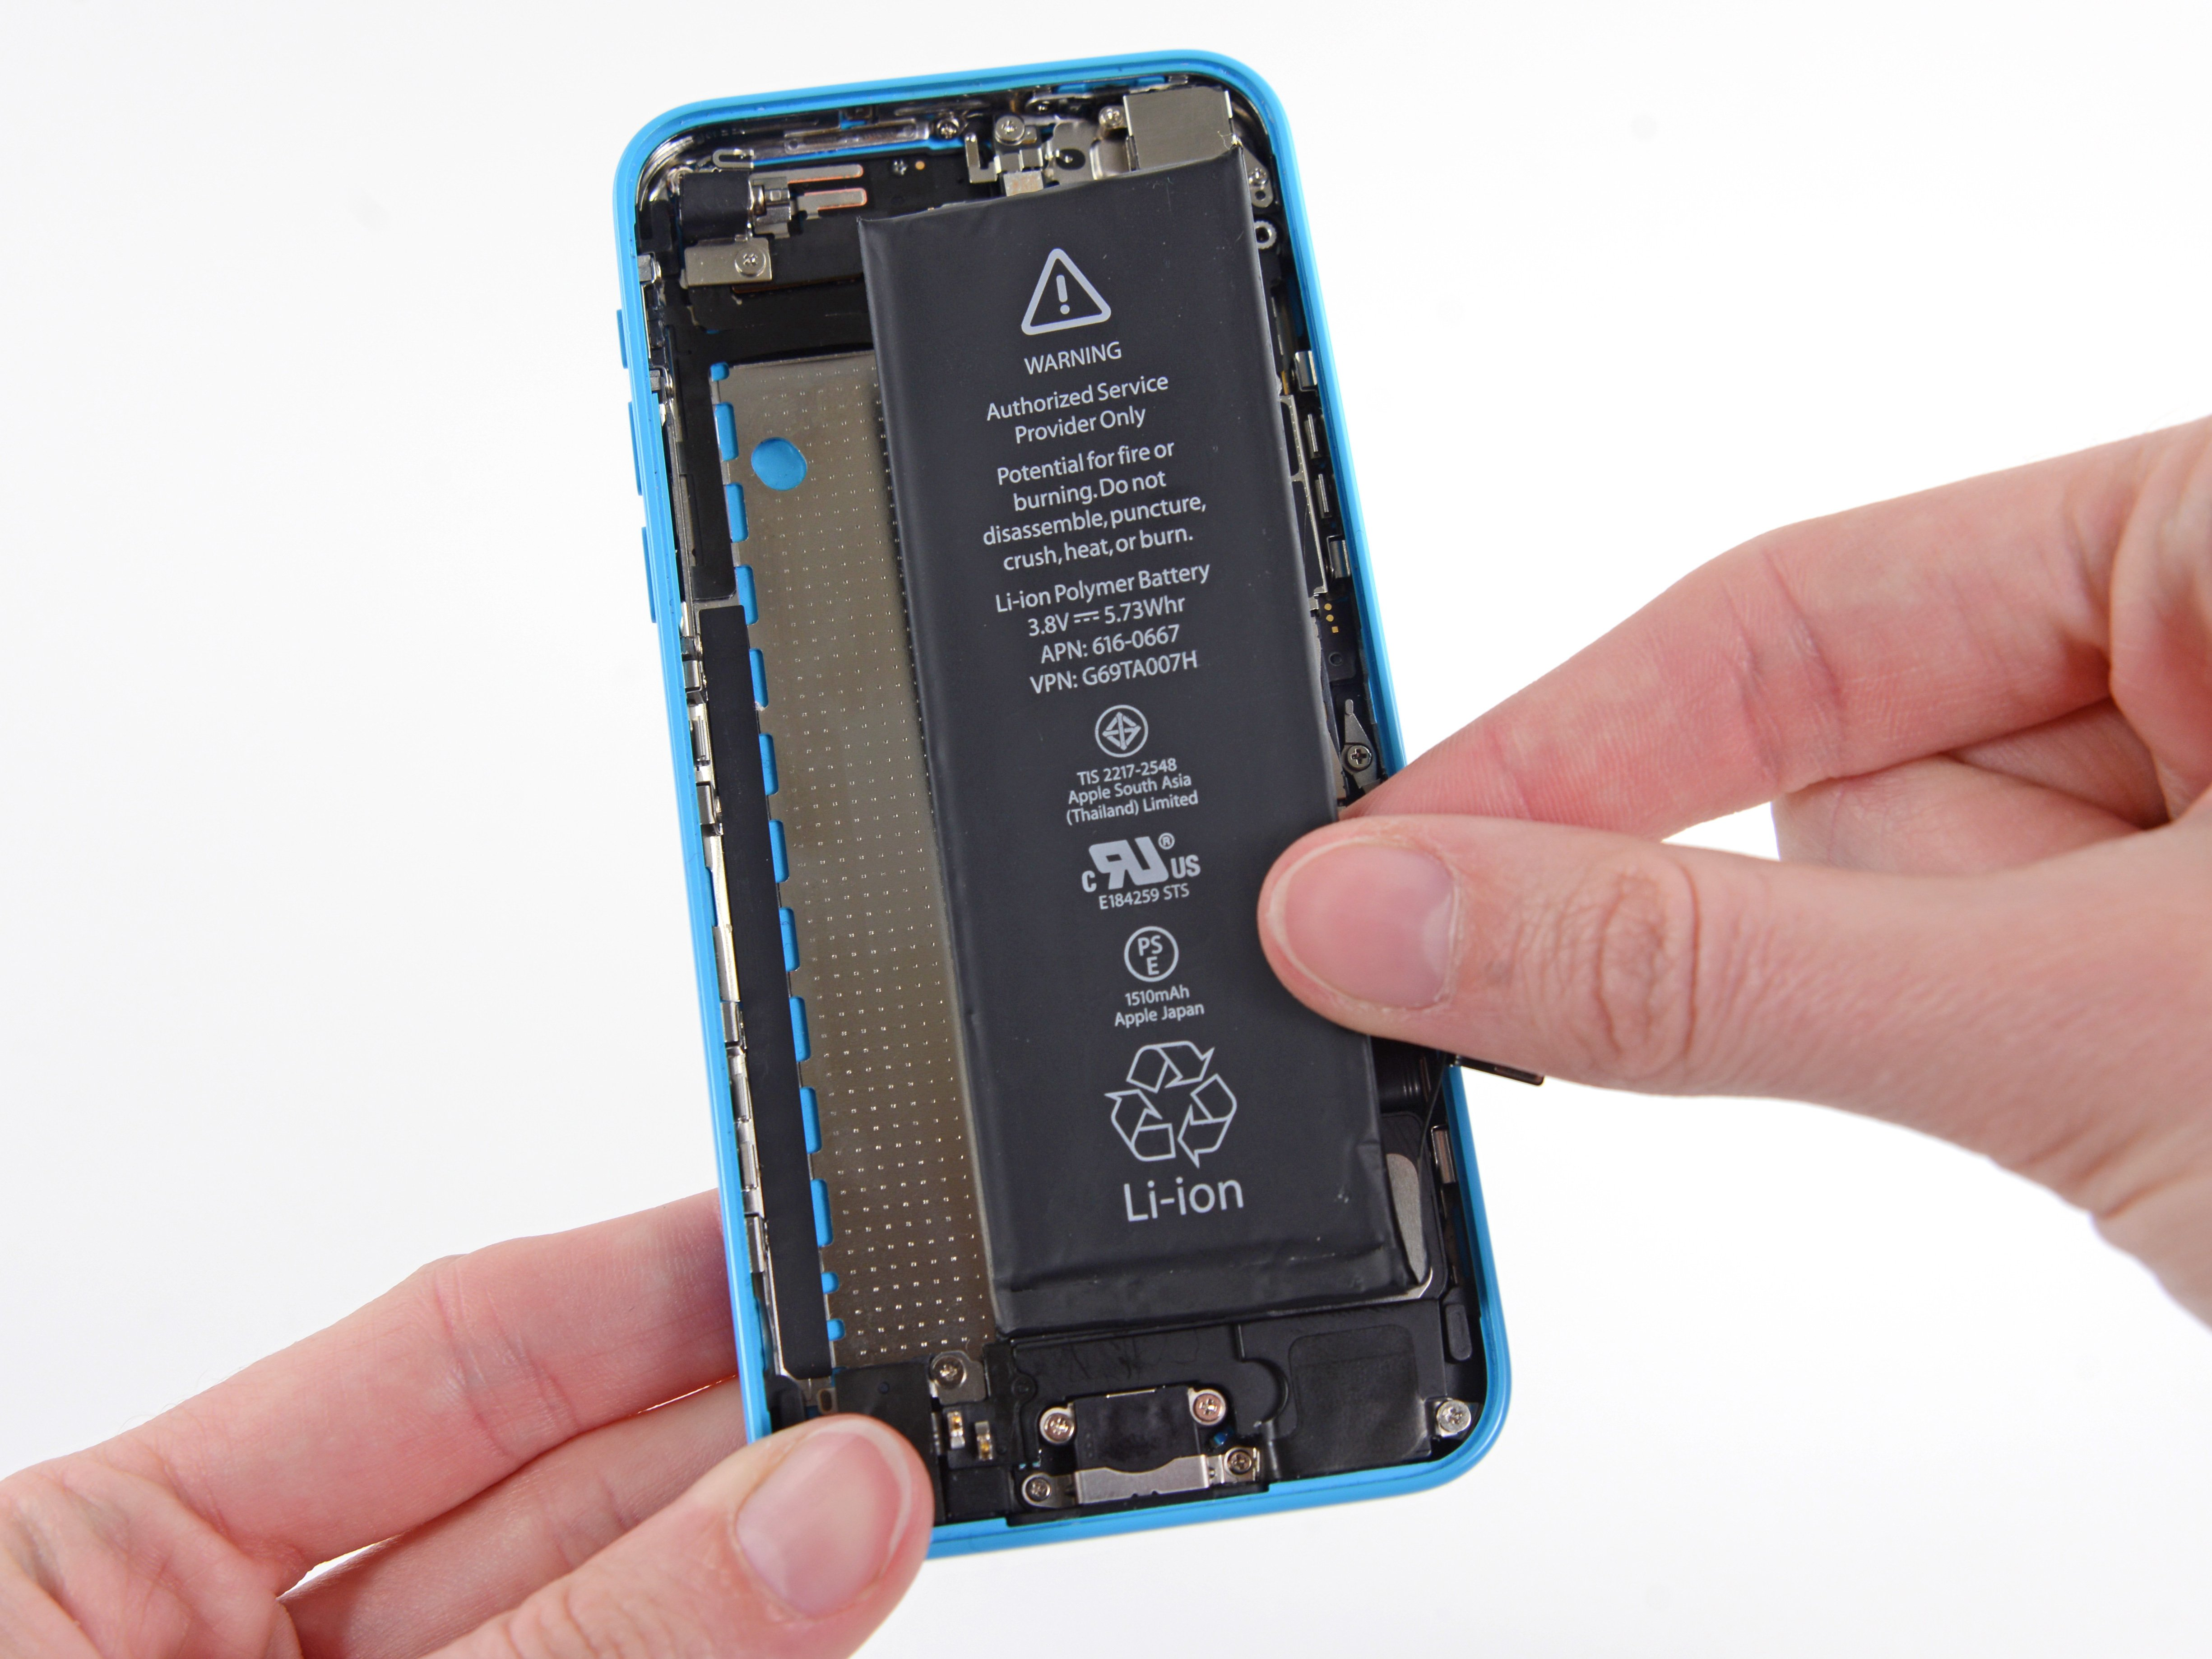 7215e2a5dfa0b0 iPhone 5c Battery Replacement - iFixit Repair Guide